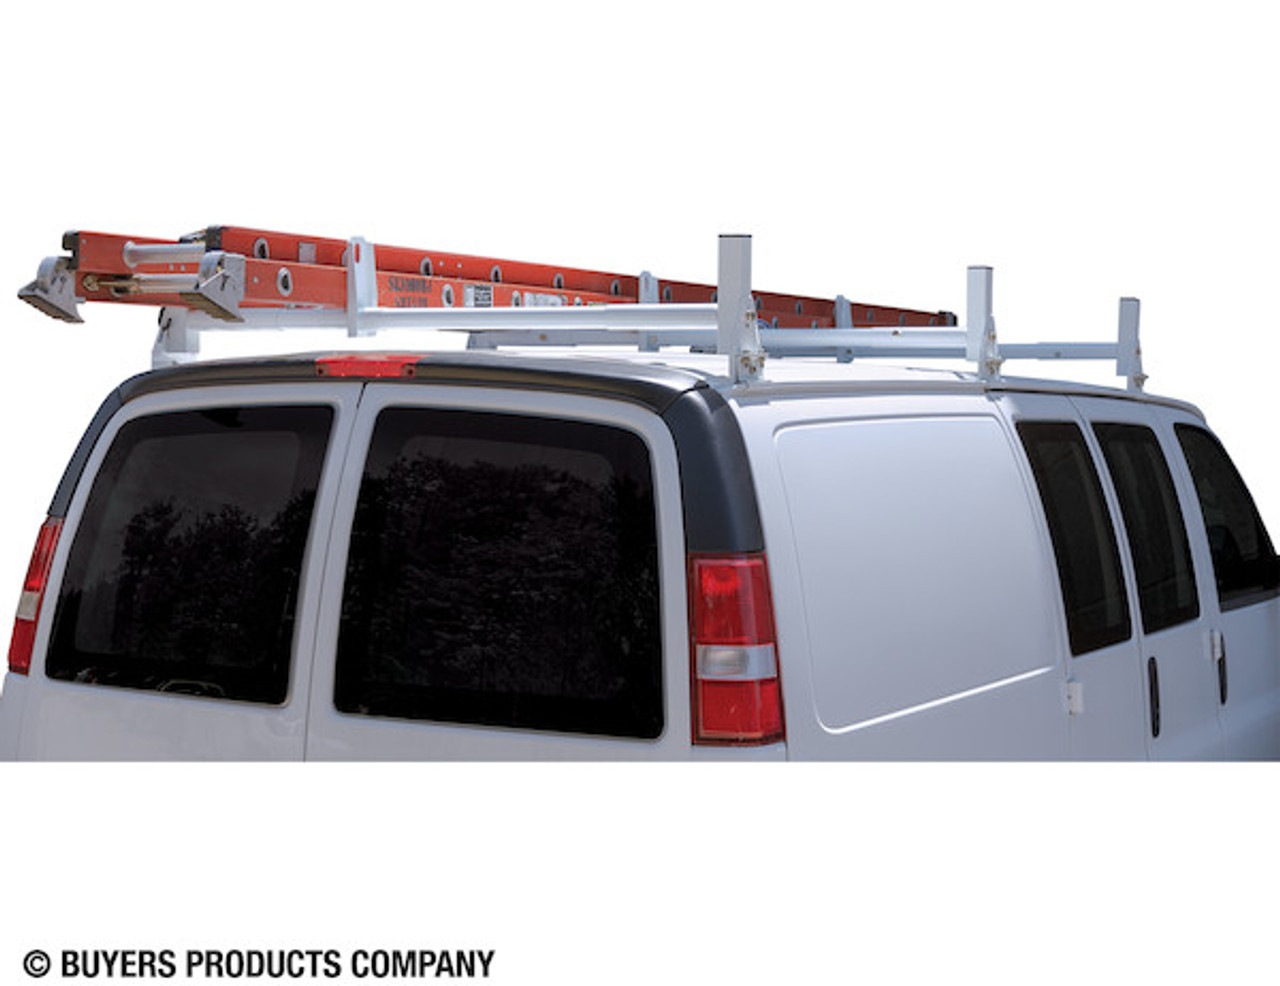 BUYERS 1501310 White Van Ladder Rack Set - 2 Bars And 2 Clamps Picture # 3 SOLD SEPARATELY